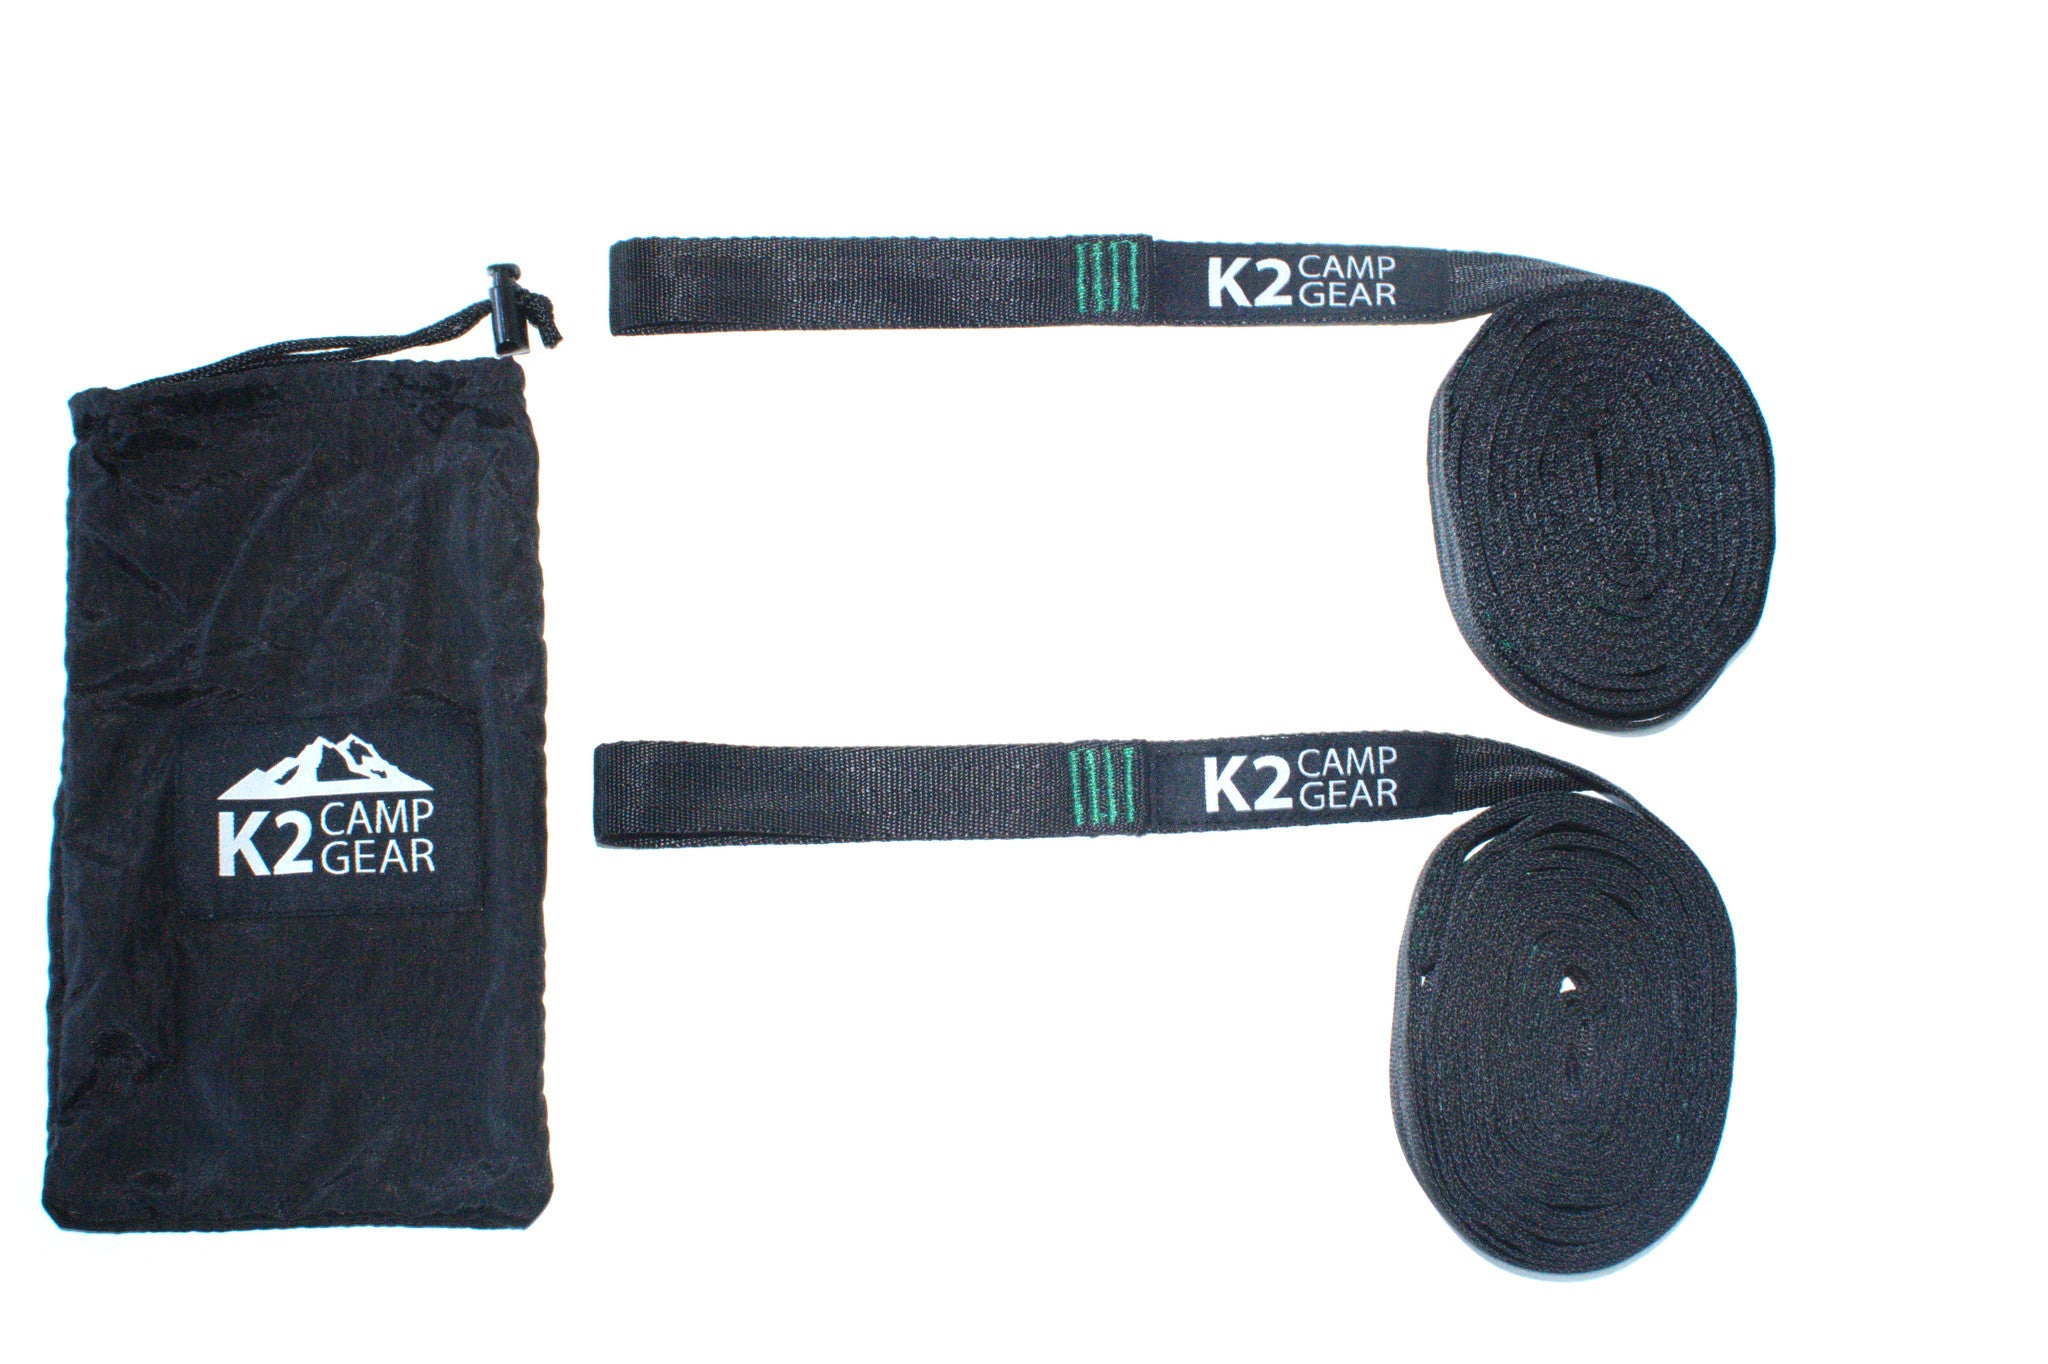 K2 Camp Gear Triple Stitched Camping Hammock Straps Tree Saver Set - 2 Straps and Carrying Case Green/Black - K2campgear - 2